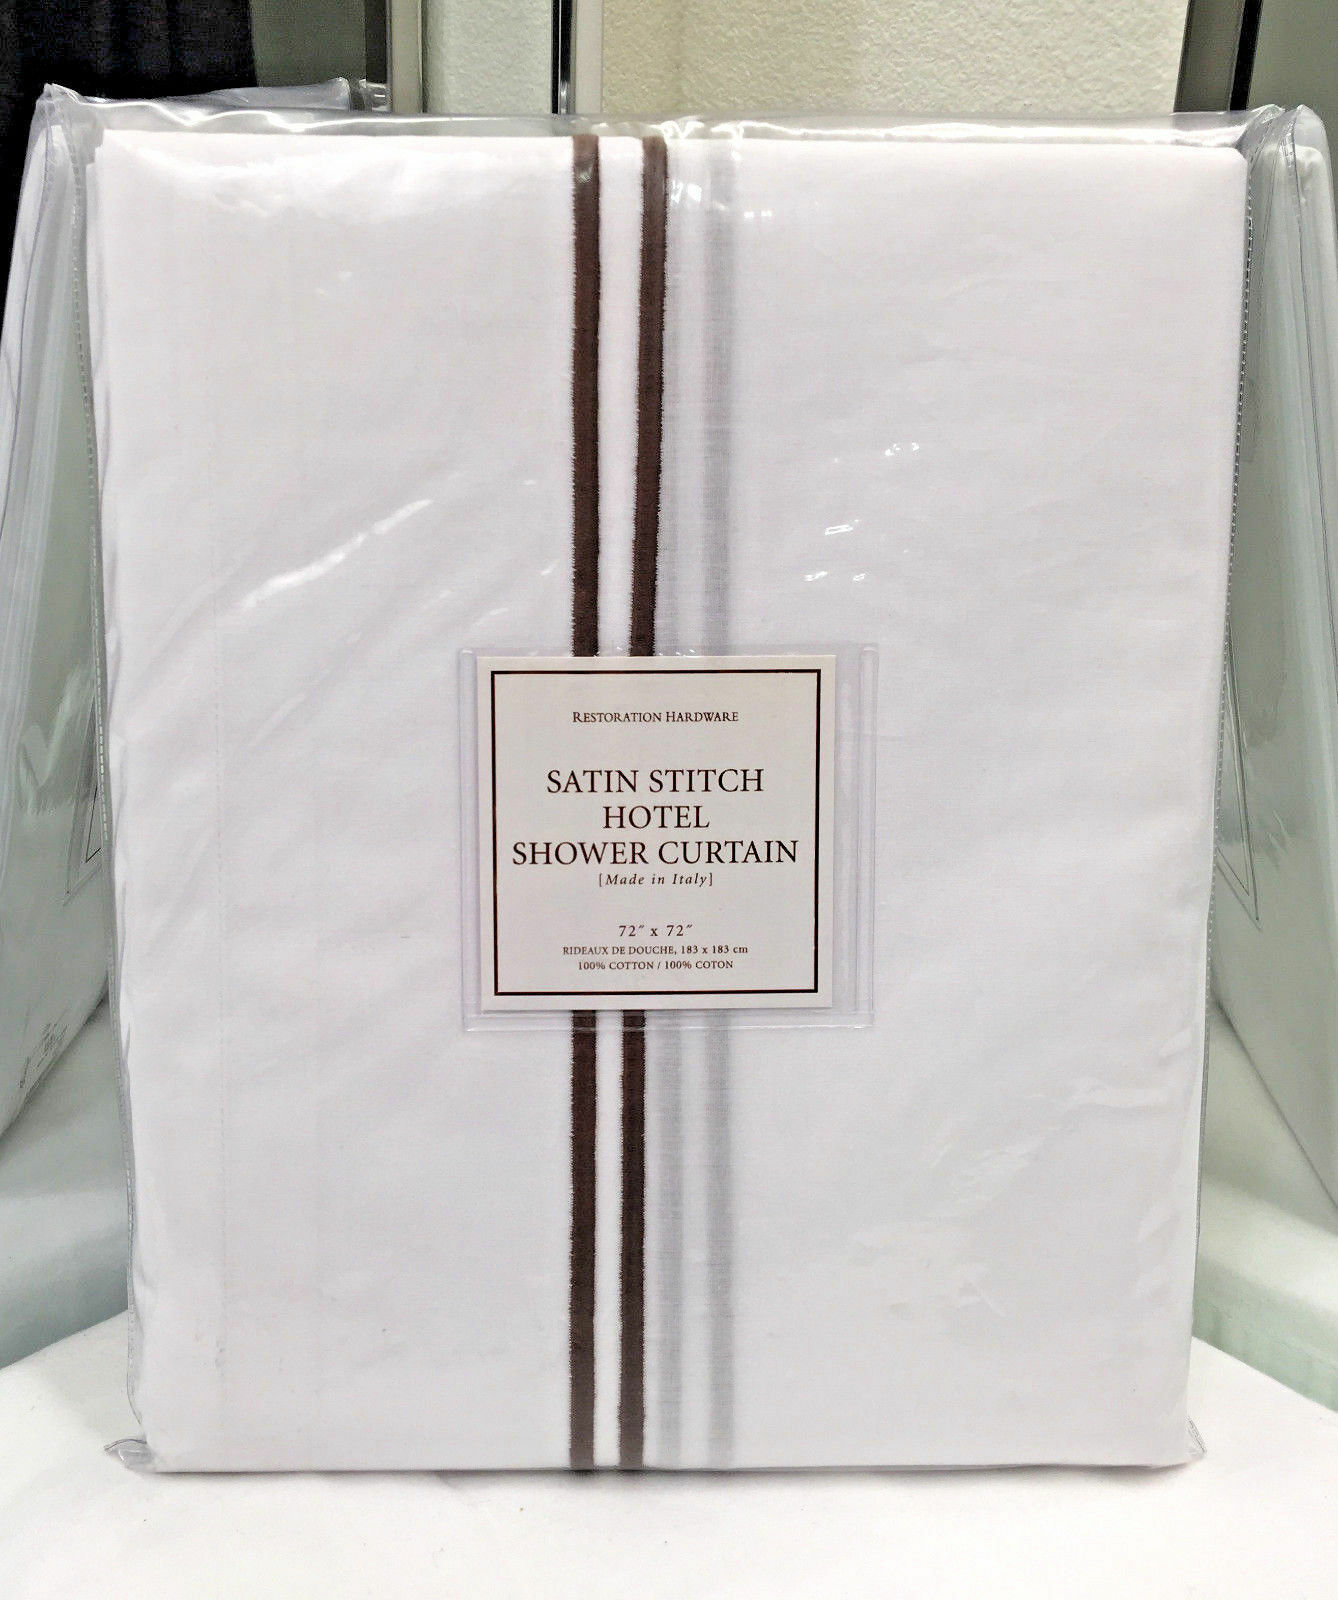 Buy Restoration Hardware Satin Stitch Hotel Shower Curtain Cotton